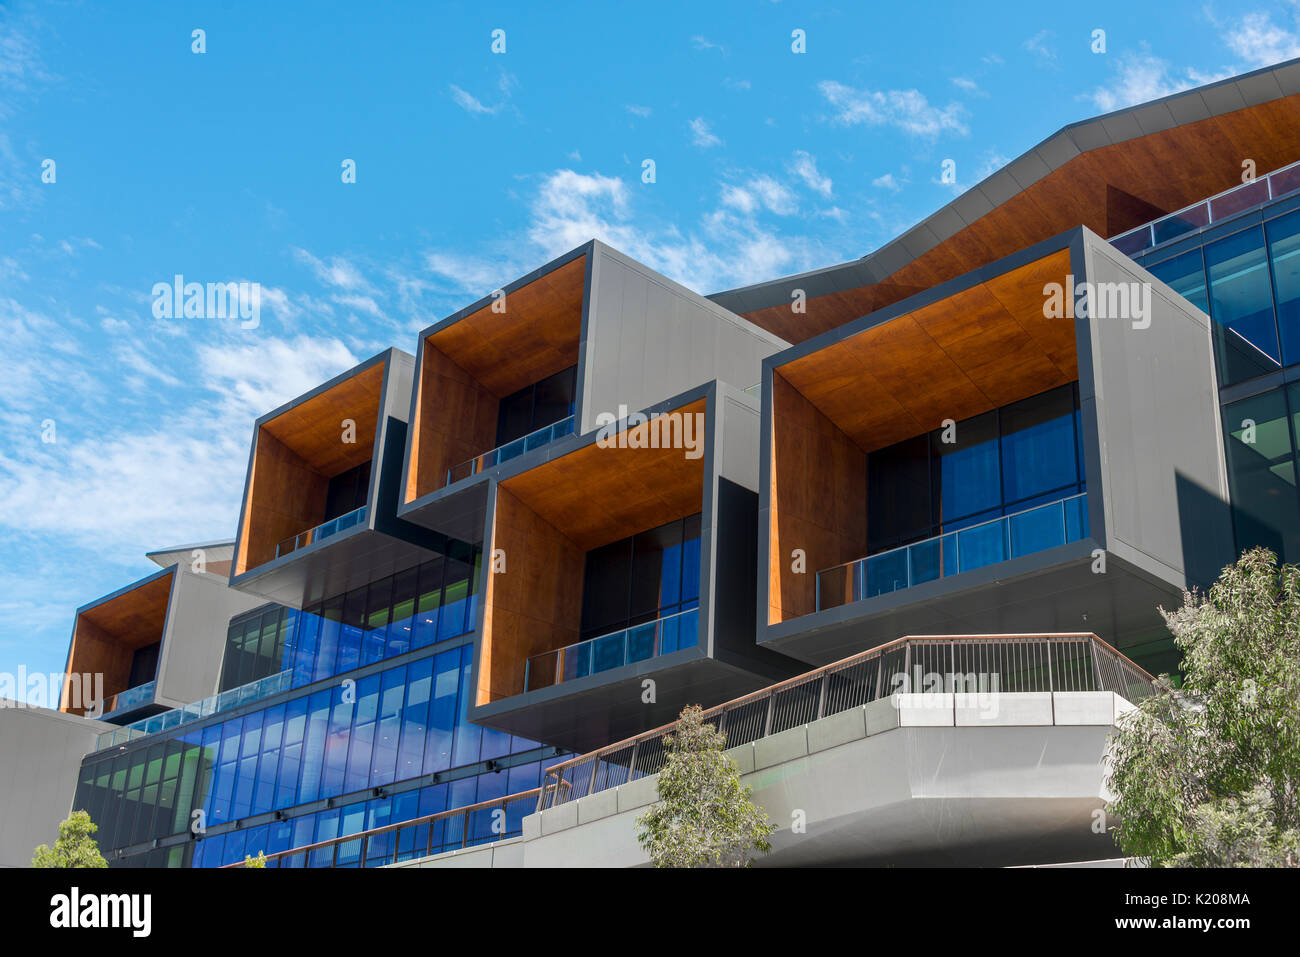 Modern architecture, Darling Harbor, New South Wales, Australia - Stock Image